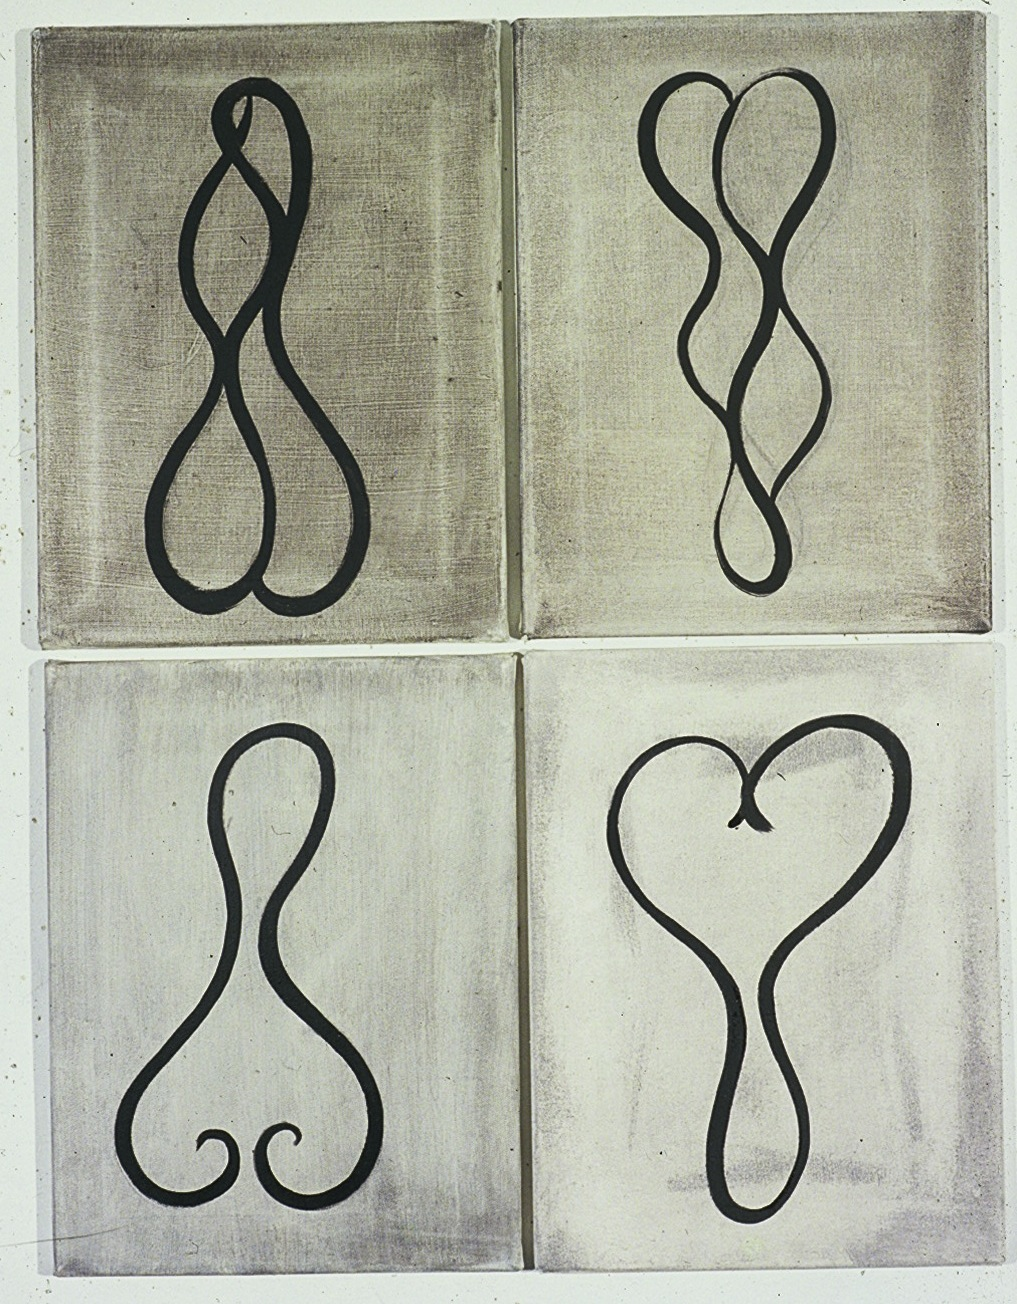 Shape Paintings 1989 - 41 x 30cm each - oil on lead primer on canvas.